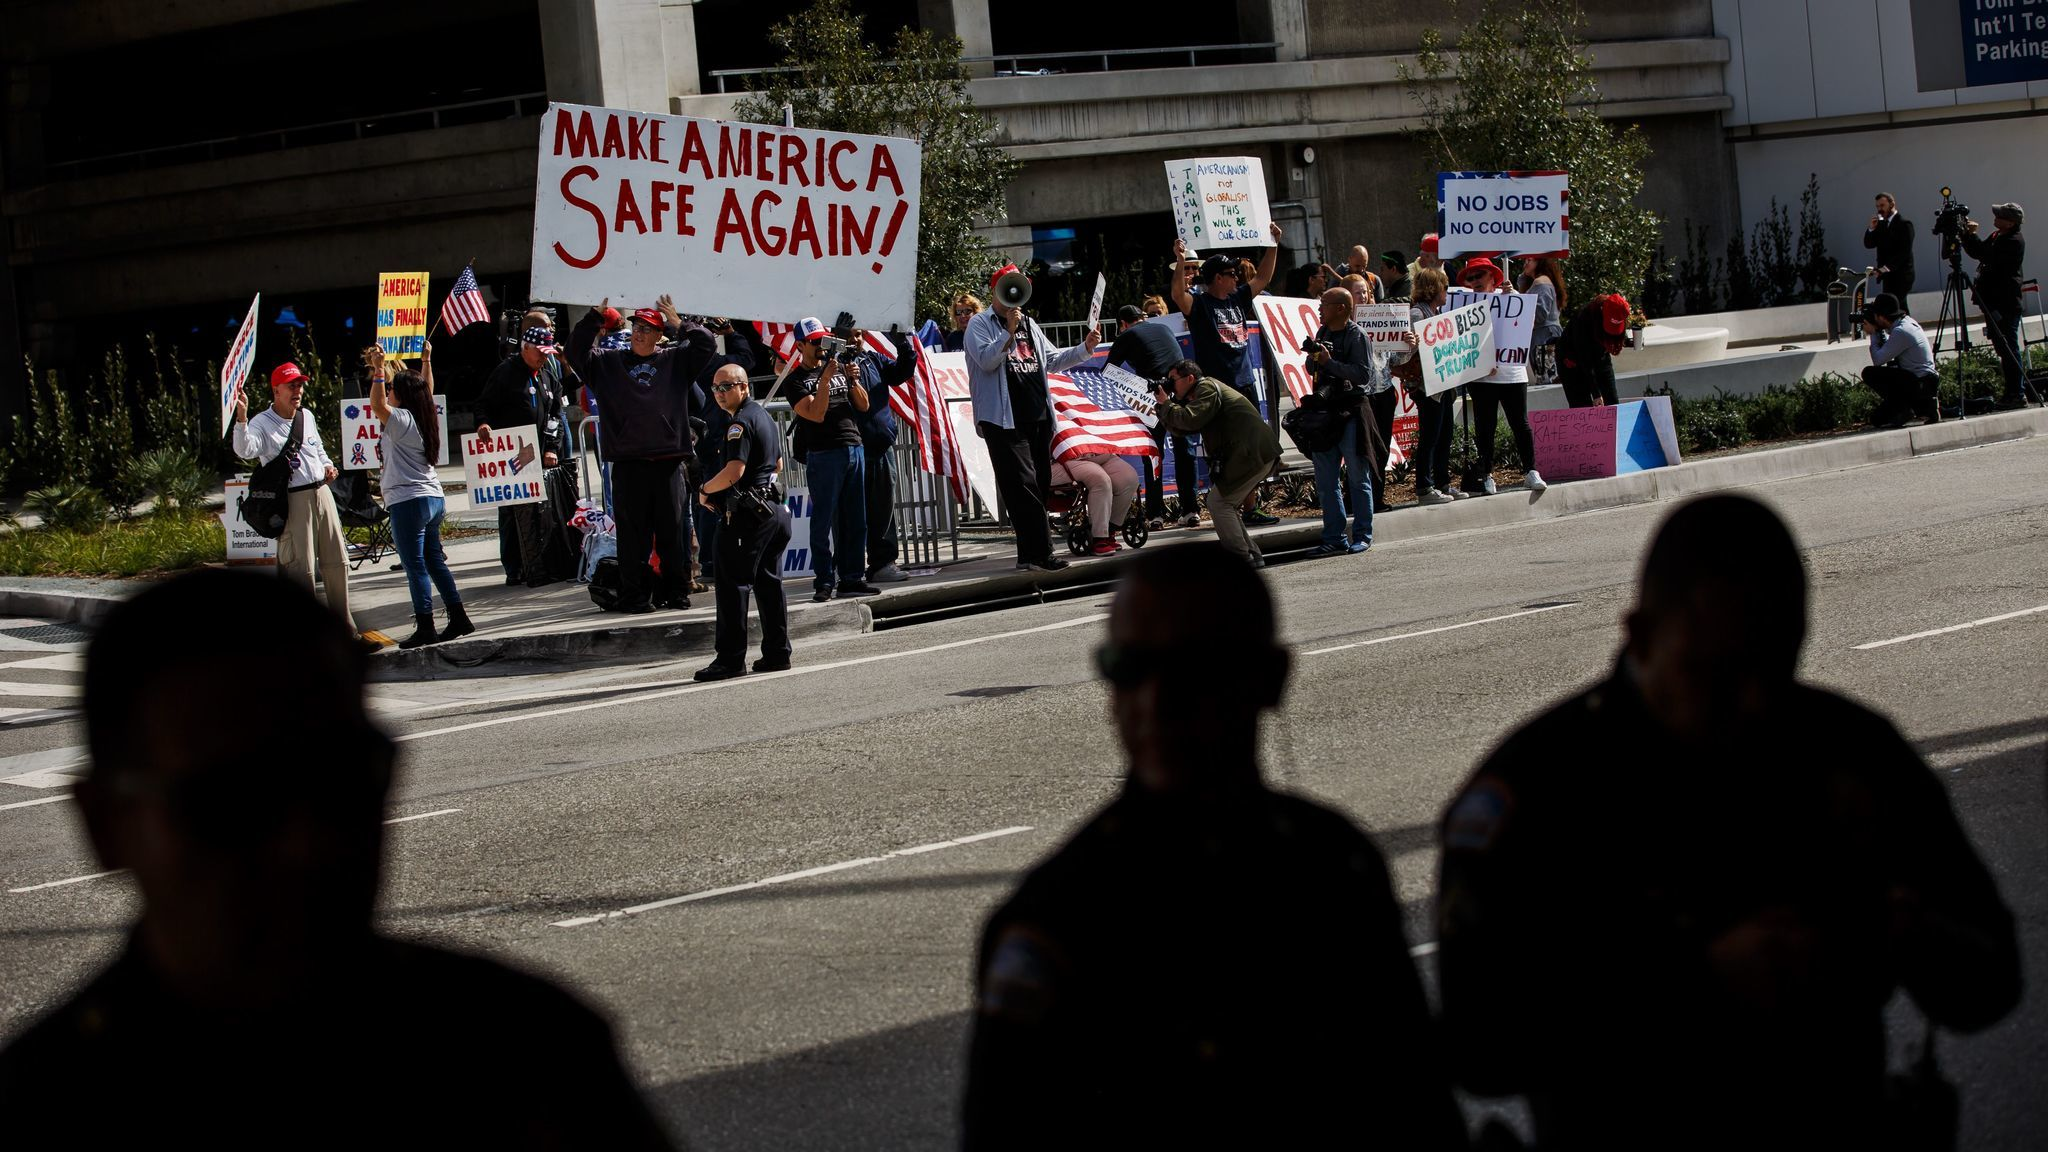 Protesters who support the travel ban stand across the street from the #NoBanNoWall protesters at Los Angeles International Airport on Feb. 4, 2017.